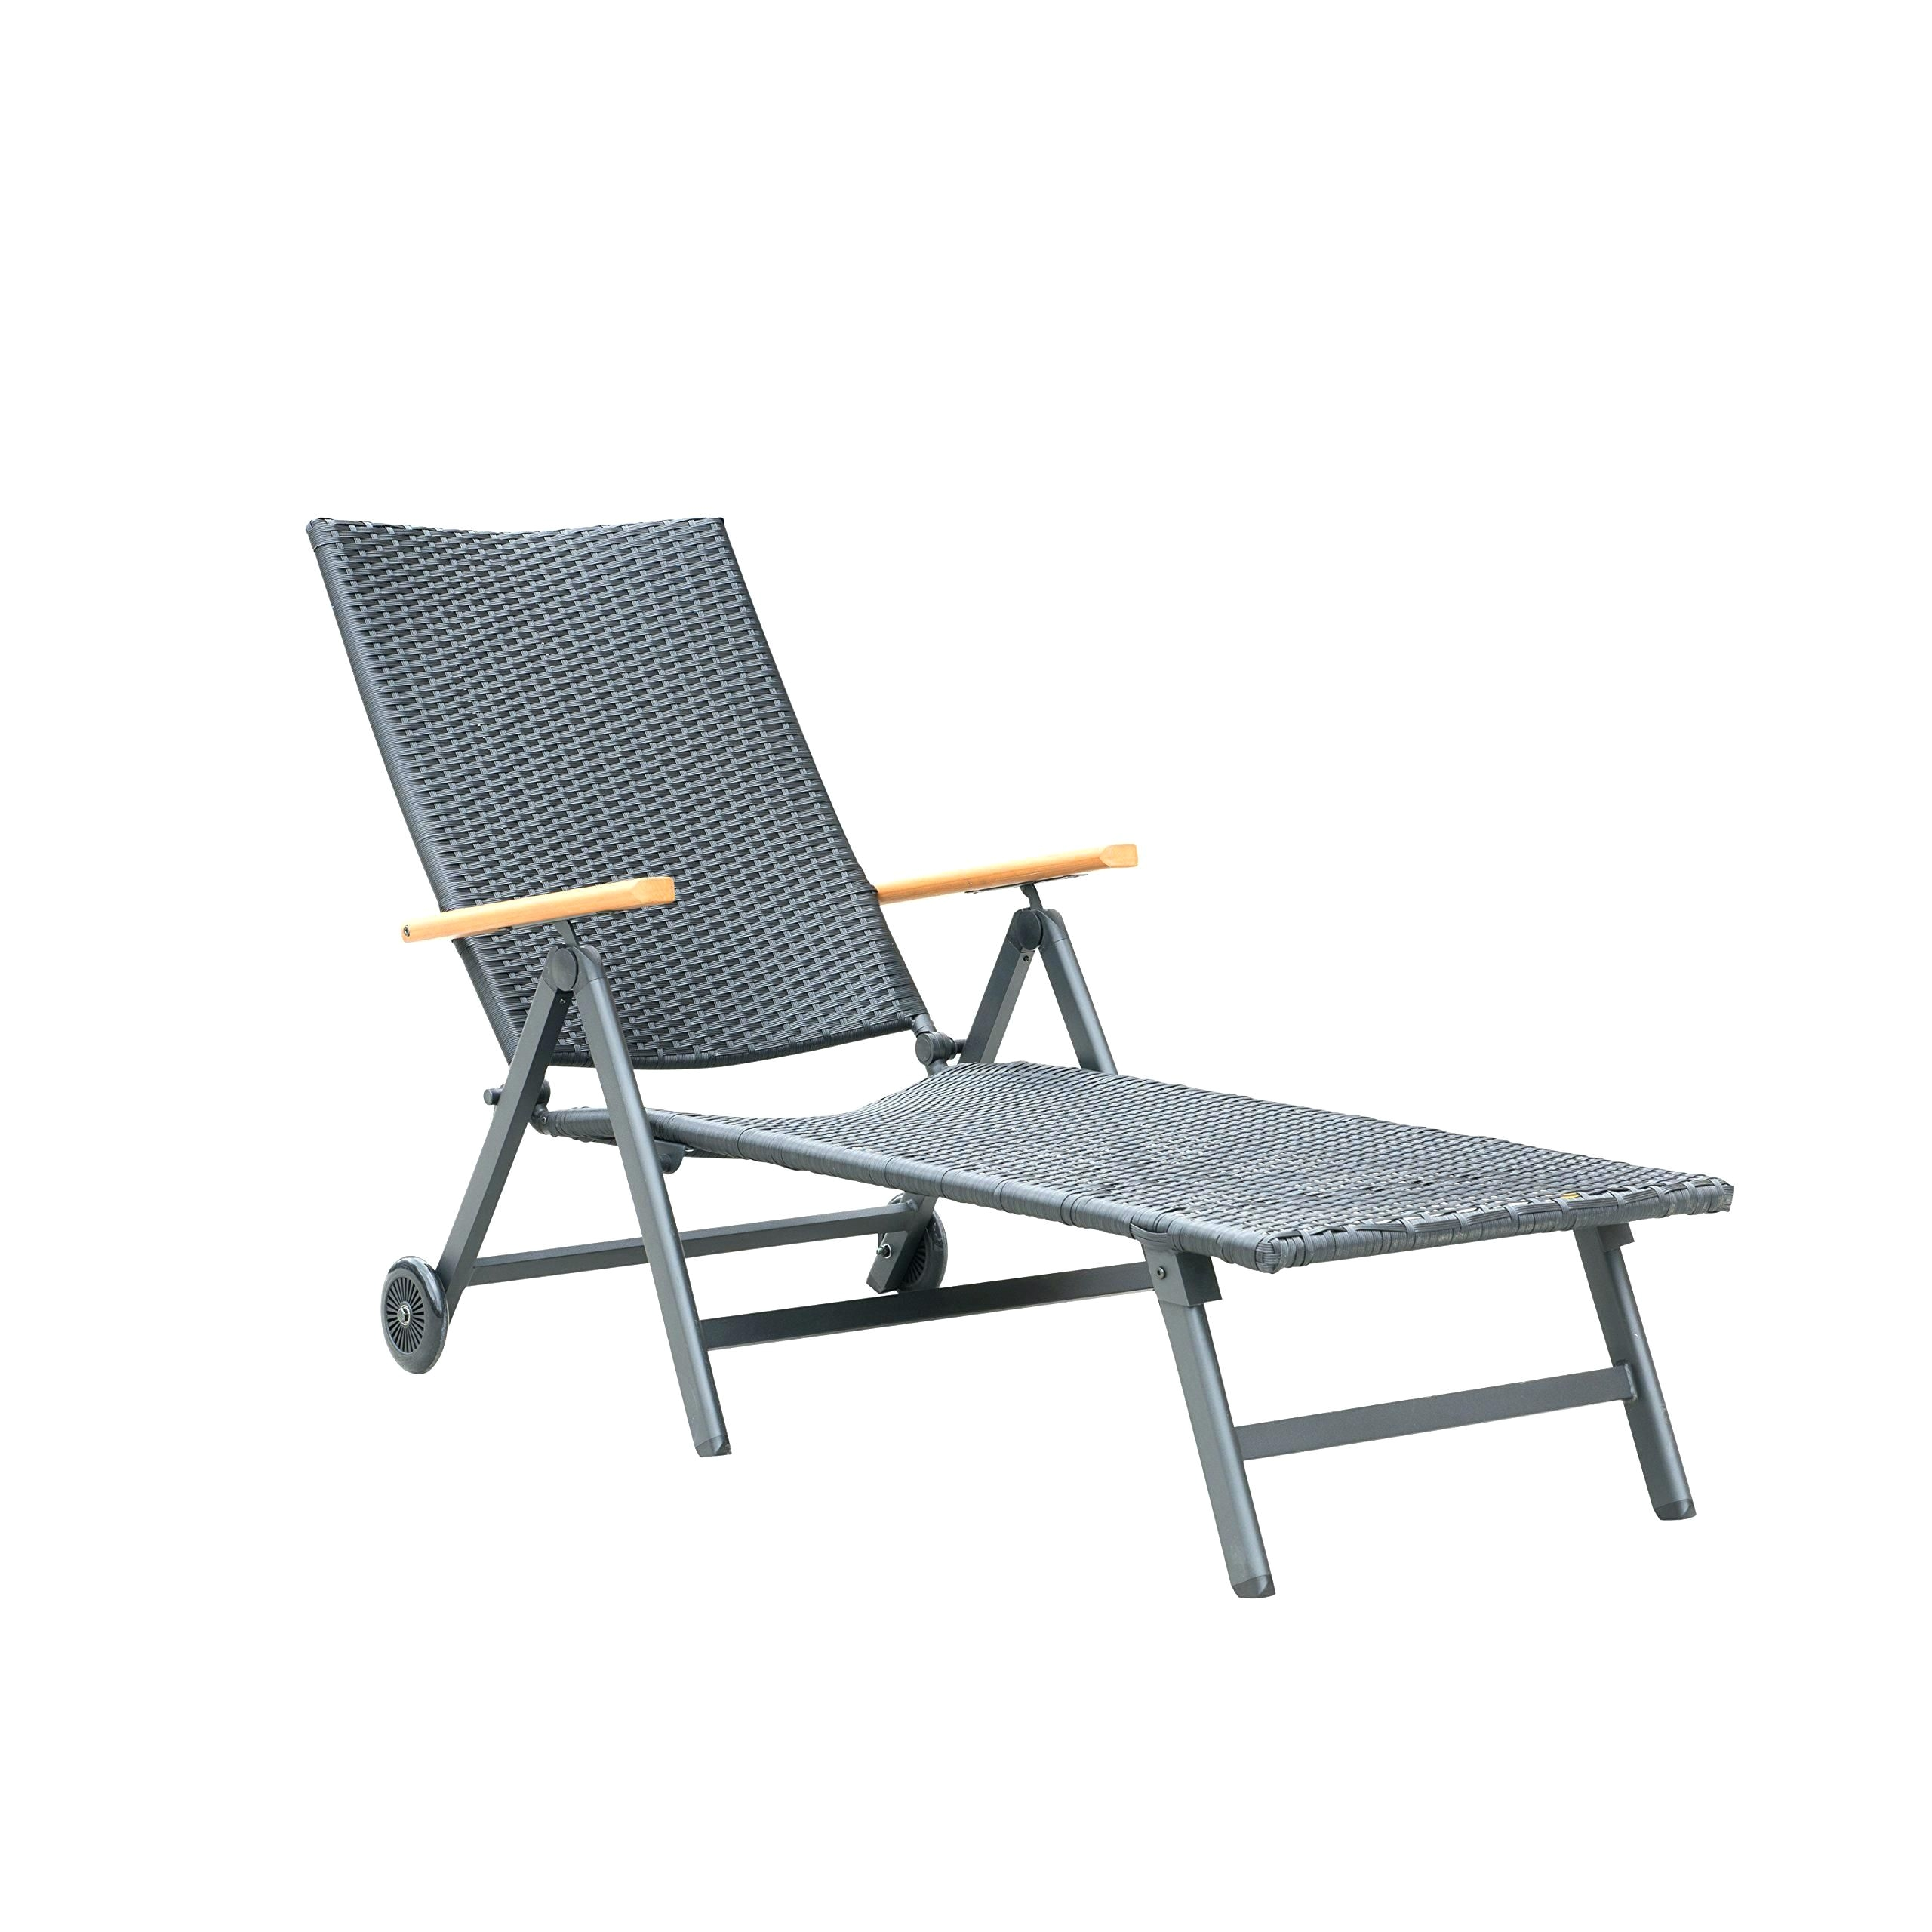 Tri Fold Lawn Chair Pvc Folding Chaise Lounge Chairs Http  Productcreationlabs Com